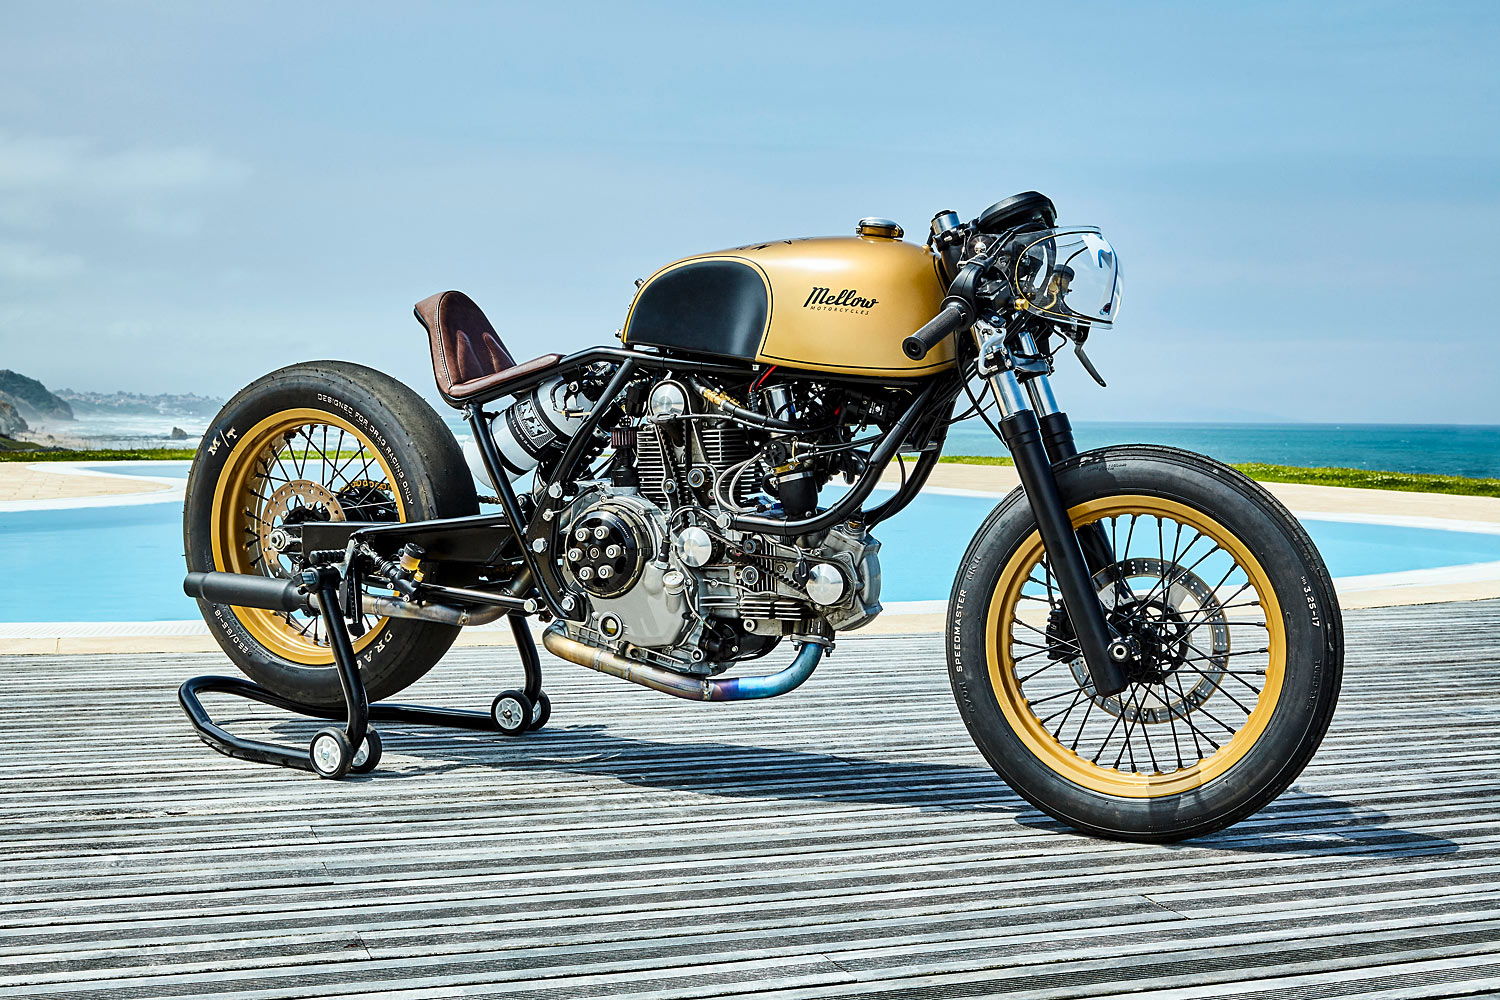 ducati motorcycles frankenstein pipeburn racer mellow monsters sprint shall slack marlon written multistrada